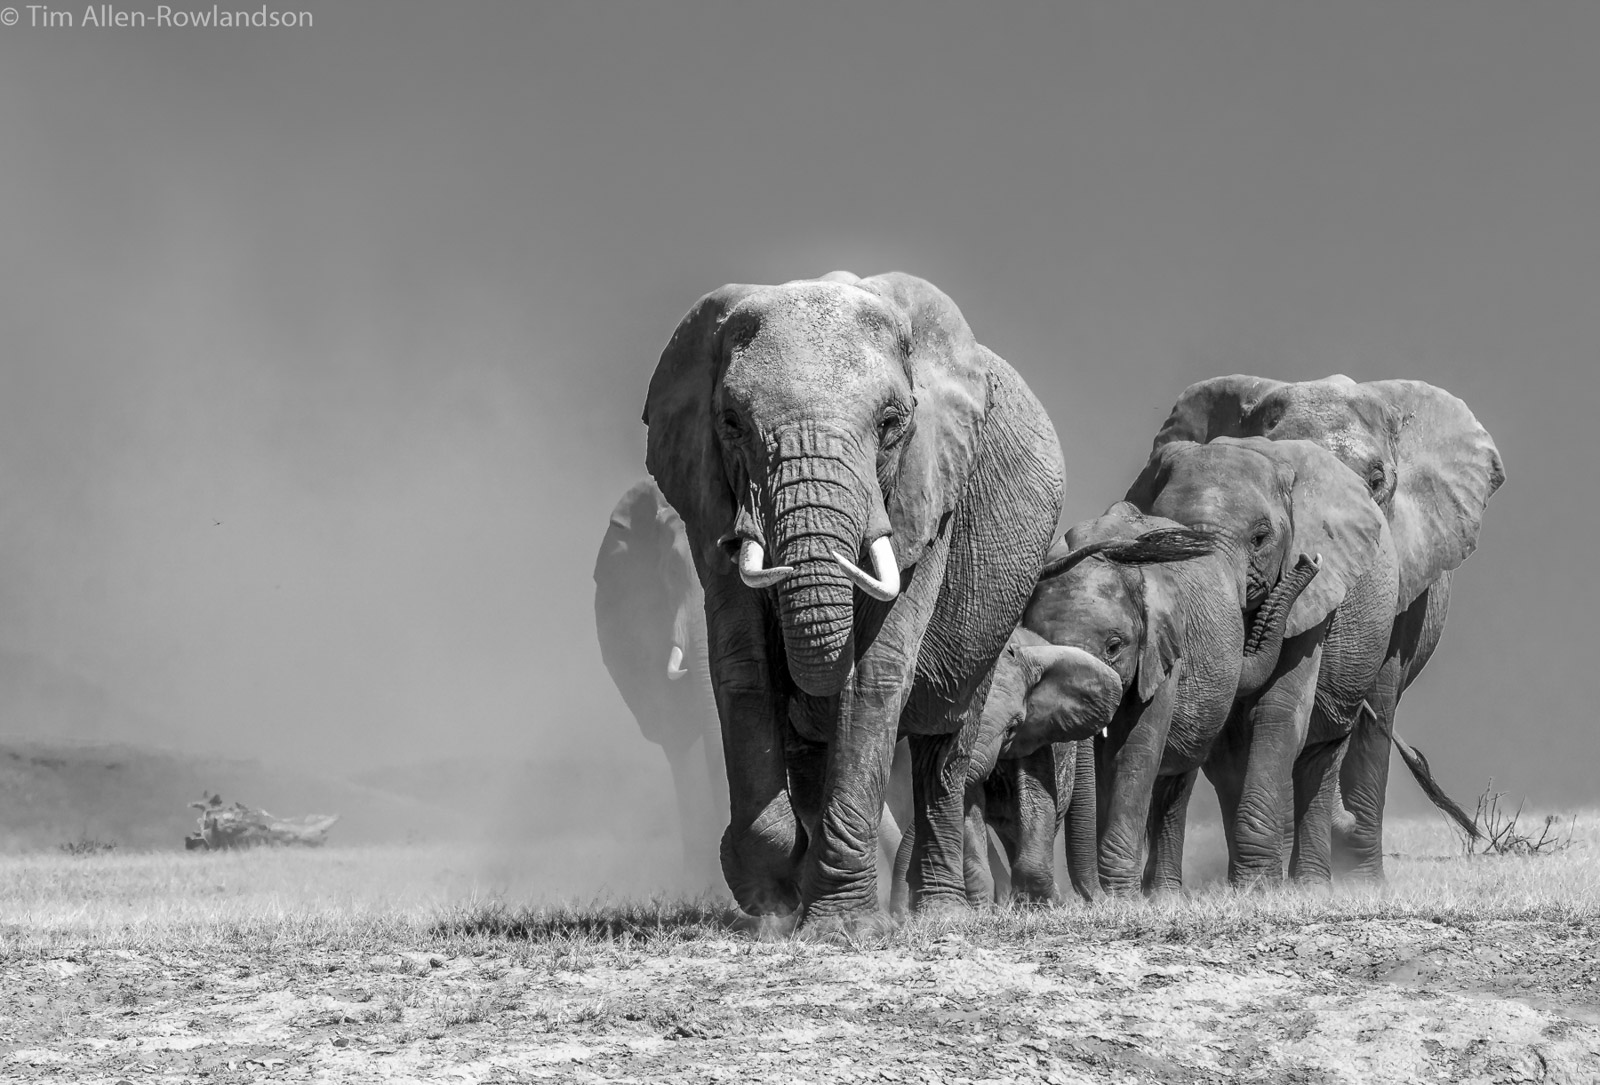 A small herd of elephants - followed by a large bull - heading towards a marshy area to feed, Amboseli